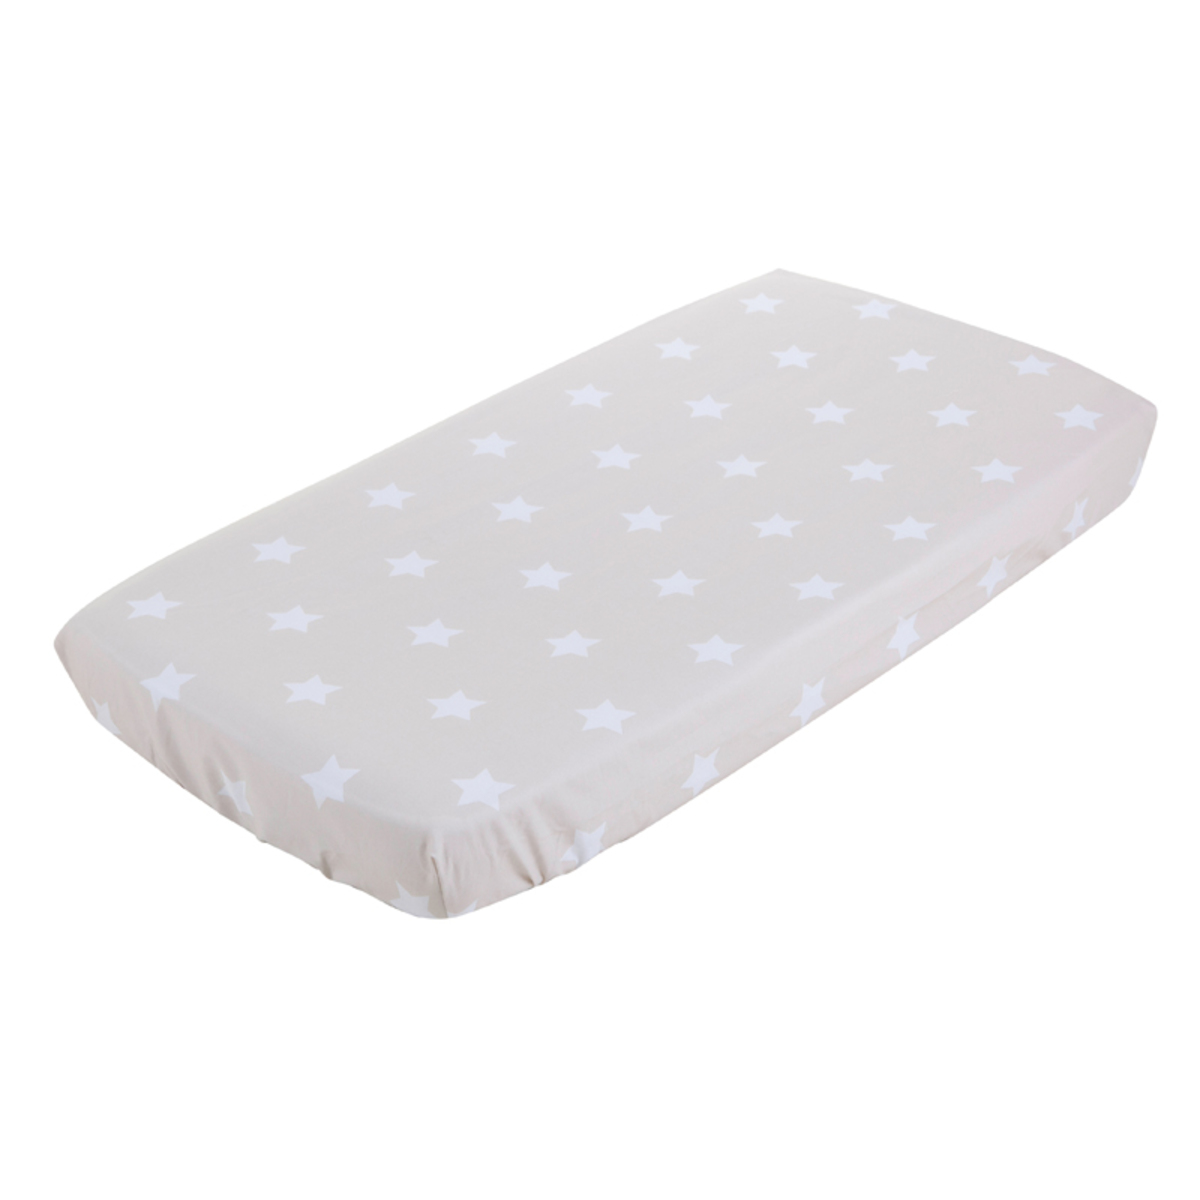 Drap housse berceau 40 x 80 cm beige with white star 1286 for Drap housse berceau